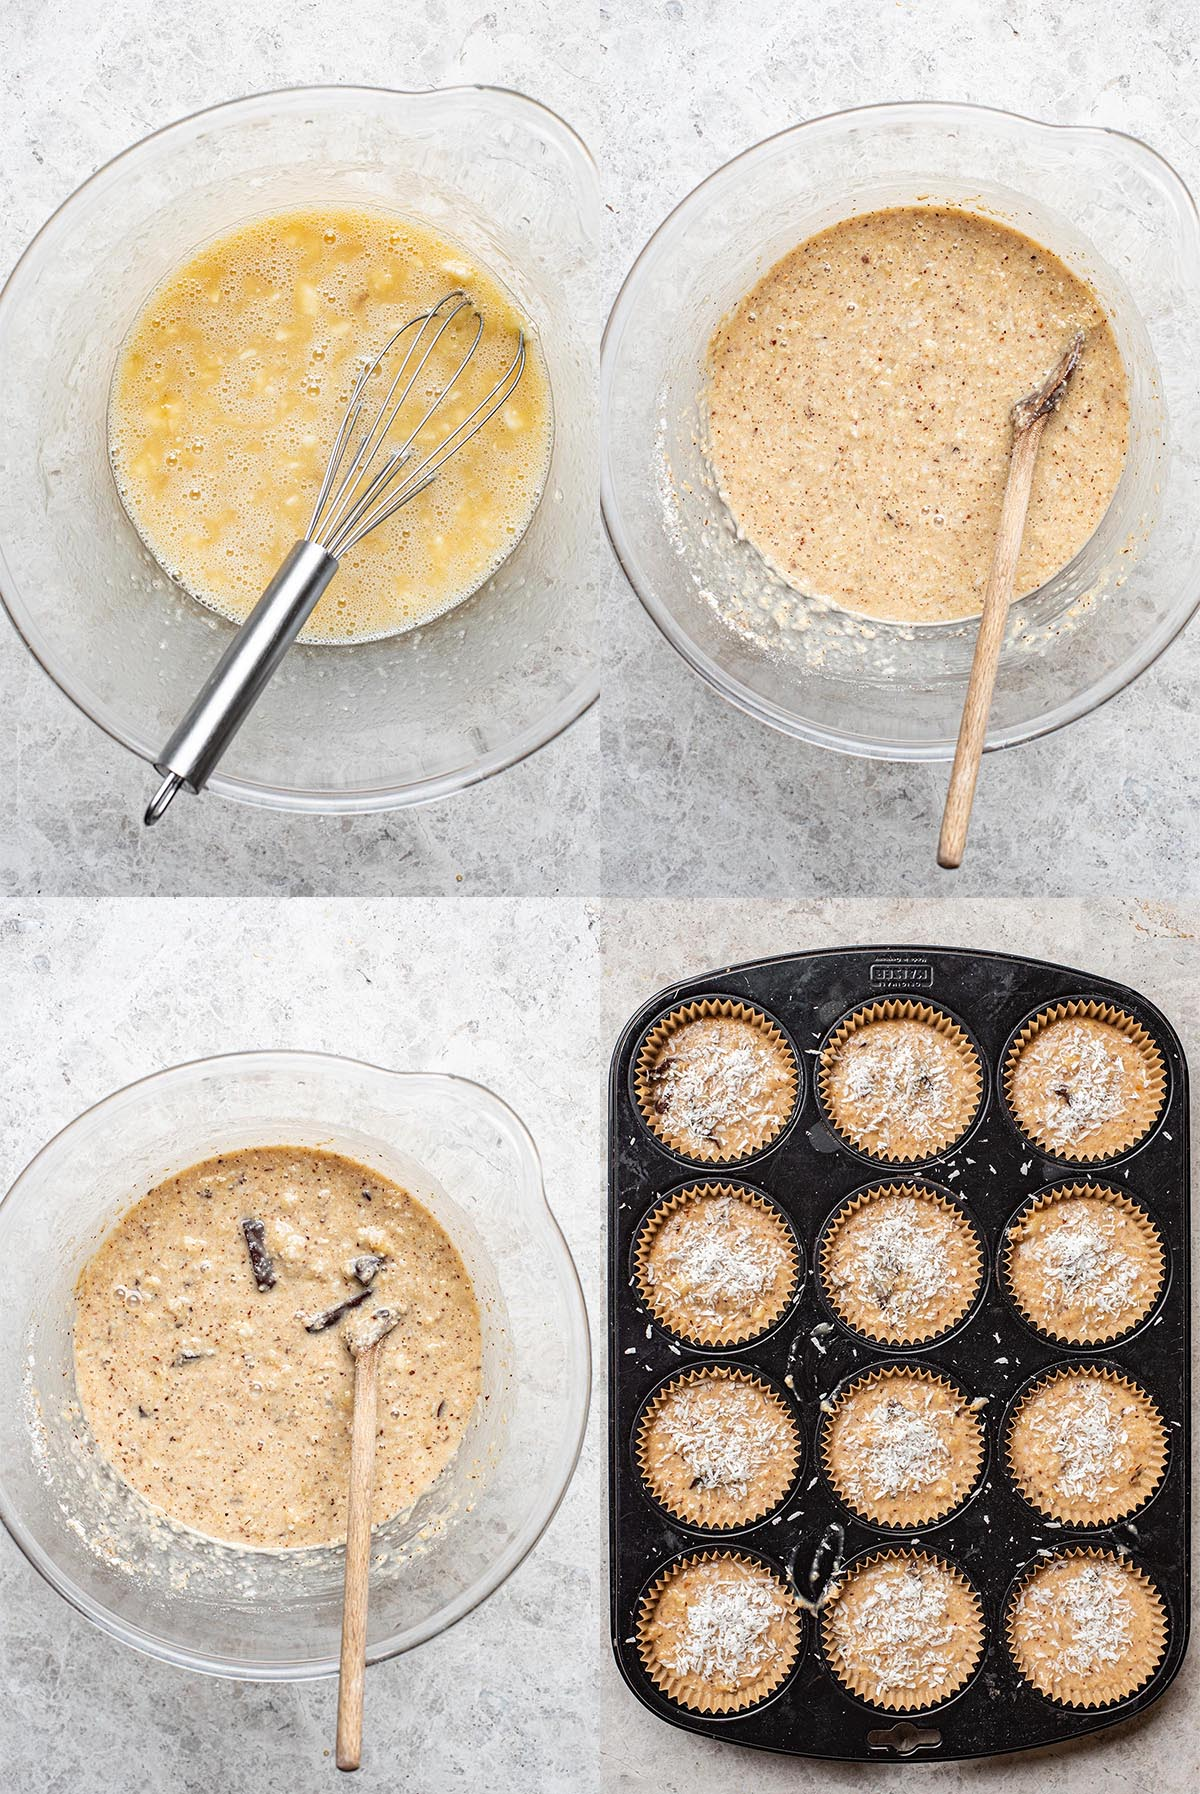 Steps for almond flour banana muffins: Mixing the wet ingredients, adding the flours, adding the chocolate, and in the muffin tin.